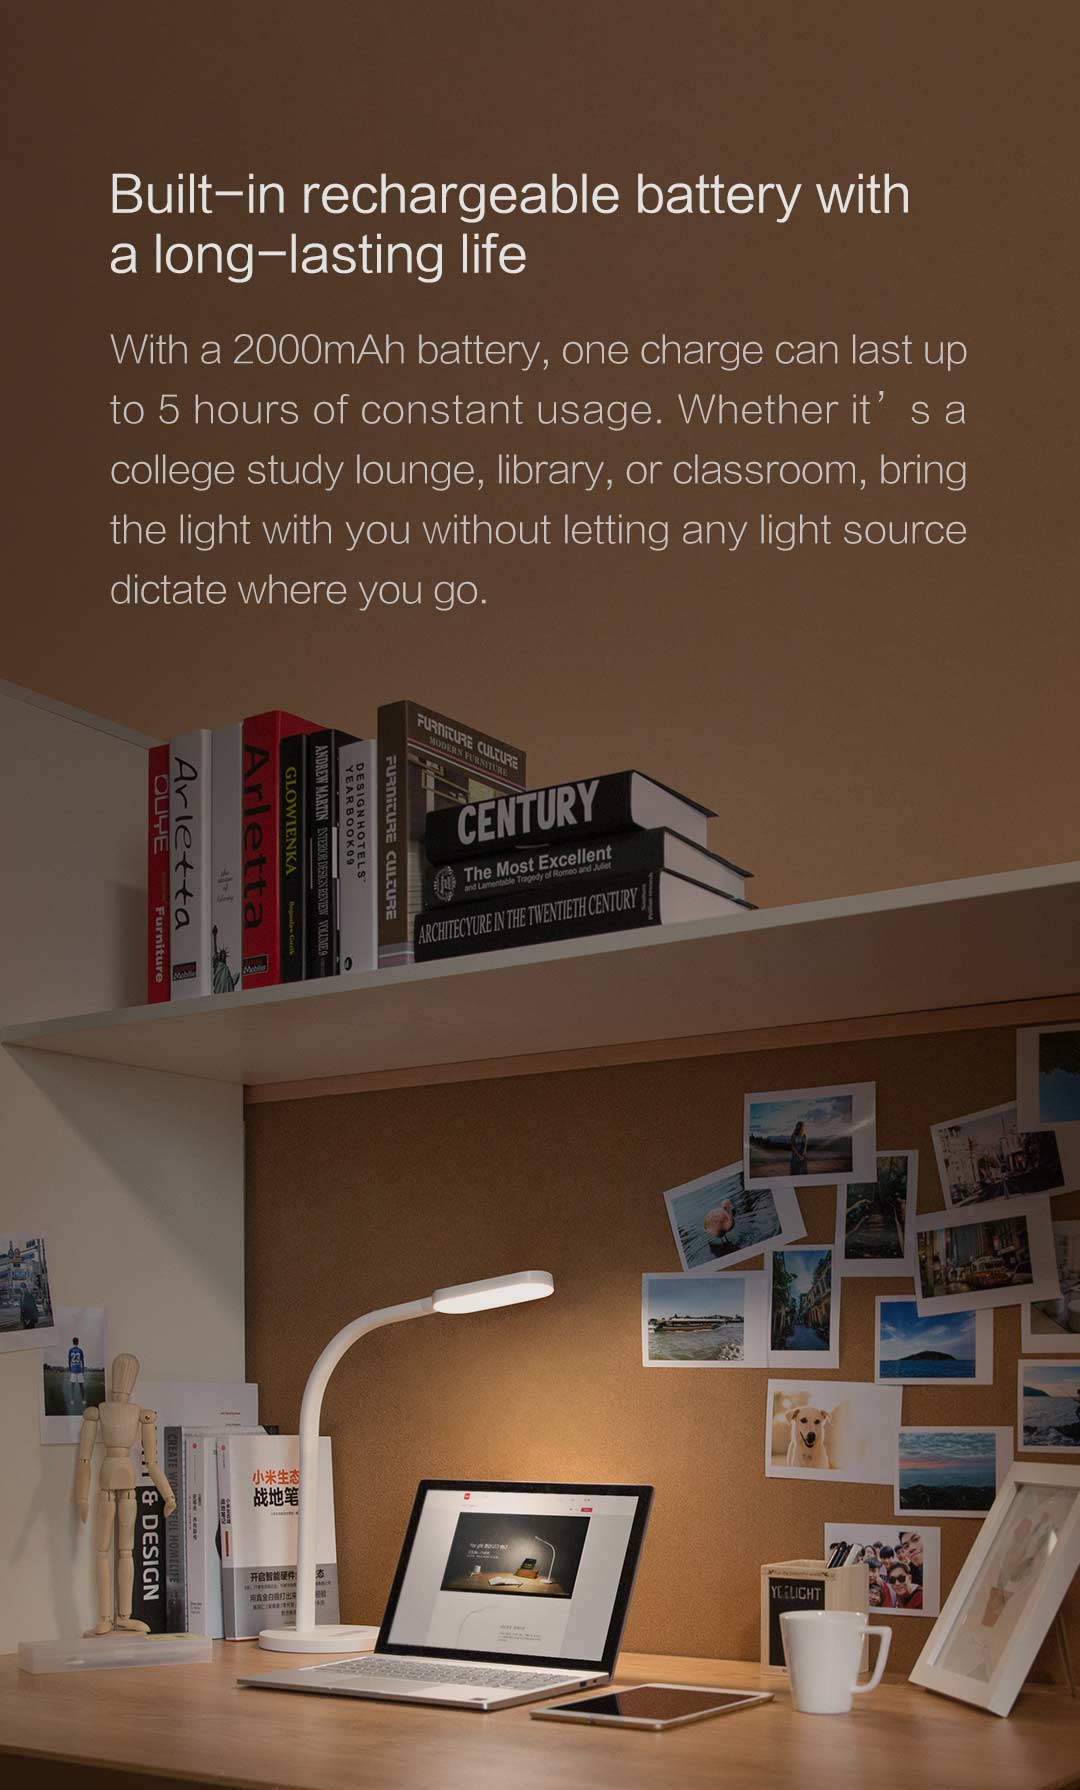 Yeelight LED Desk Lamp